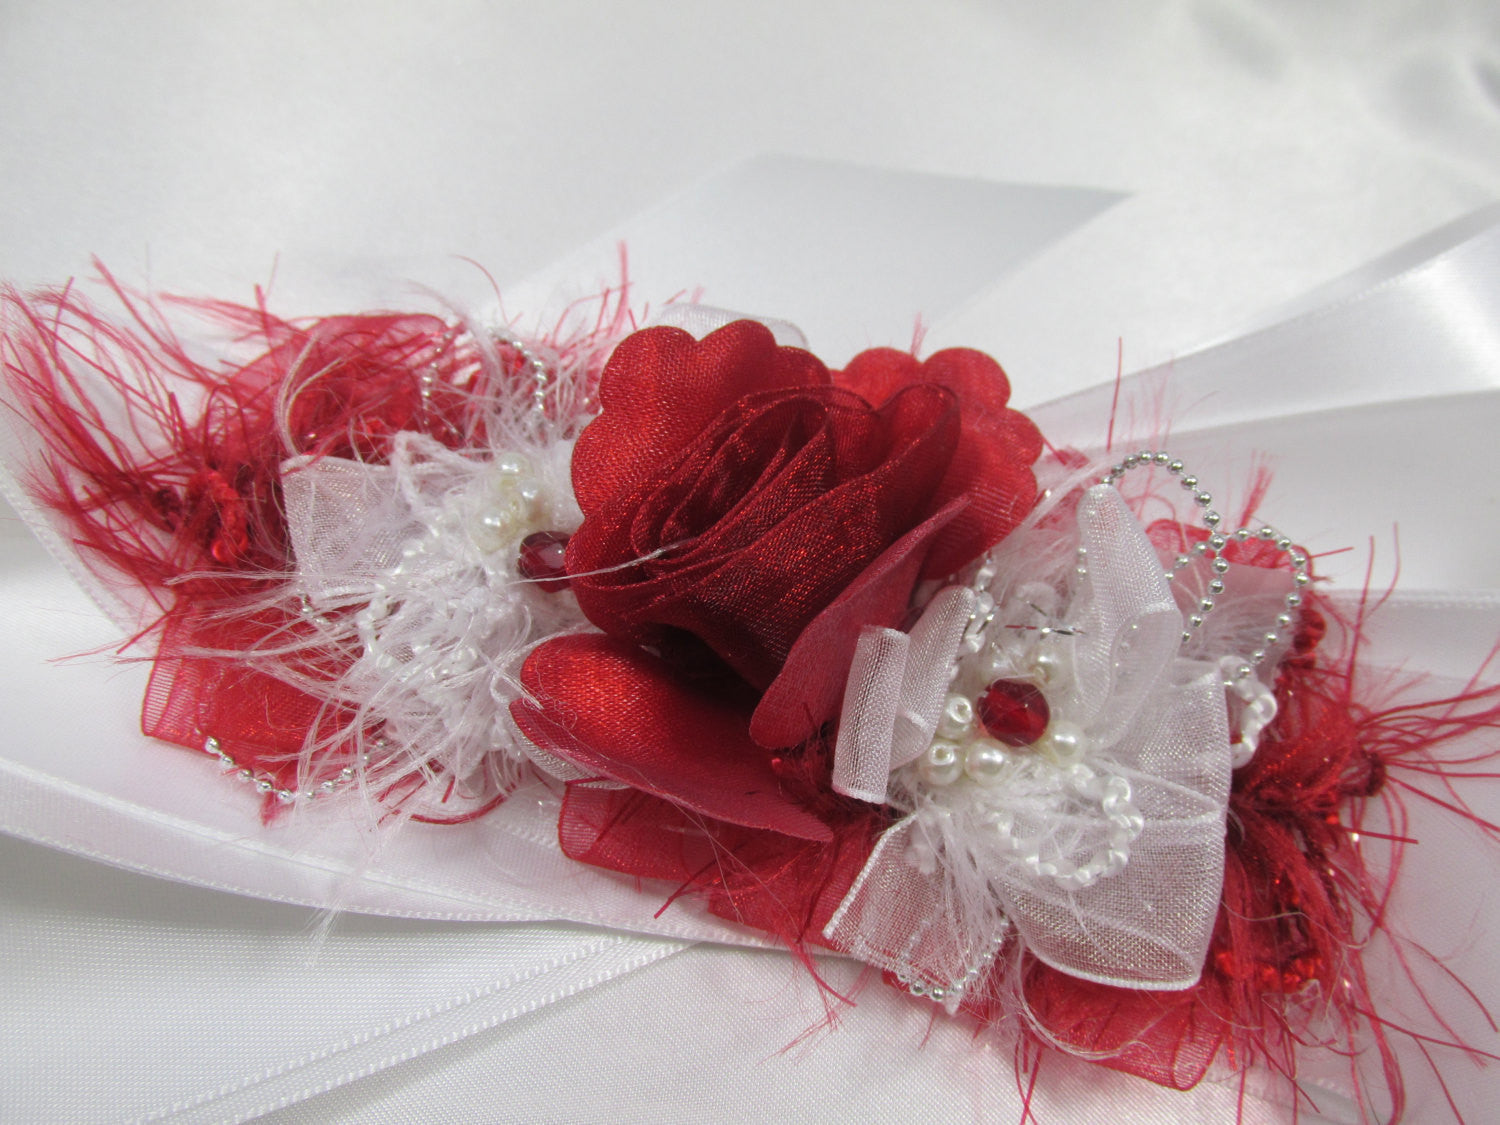 Red and White Bridal Sash with White Pearls and Silver accents on Satin Ribbon - Odyssey Creations